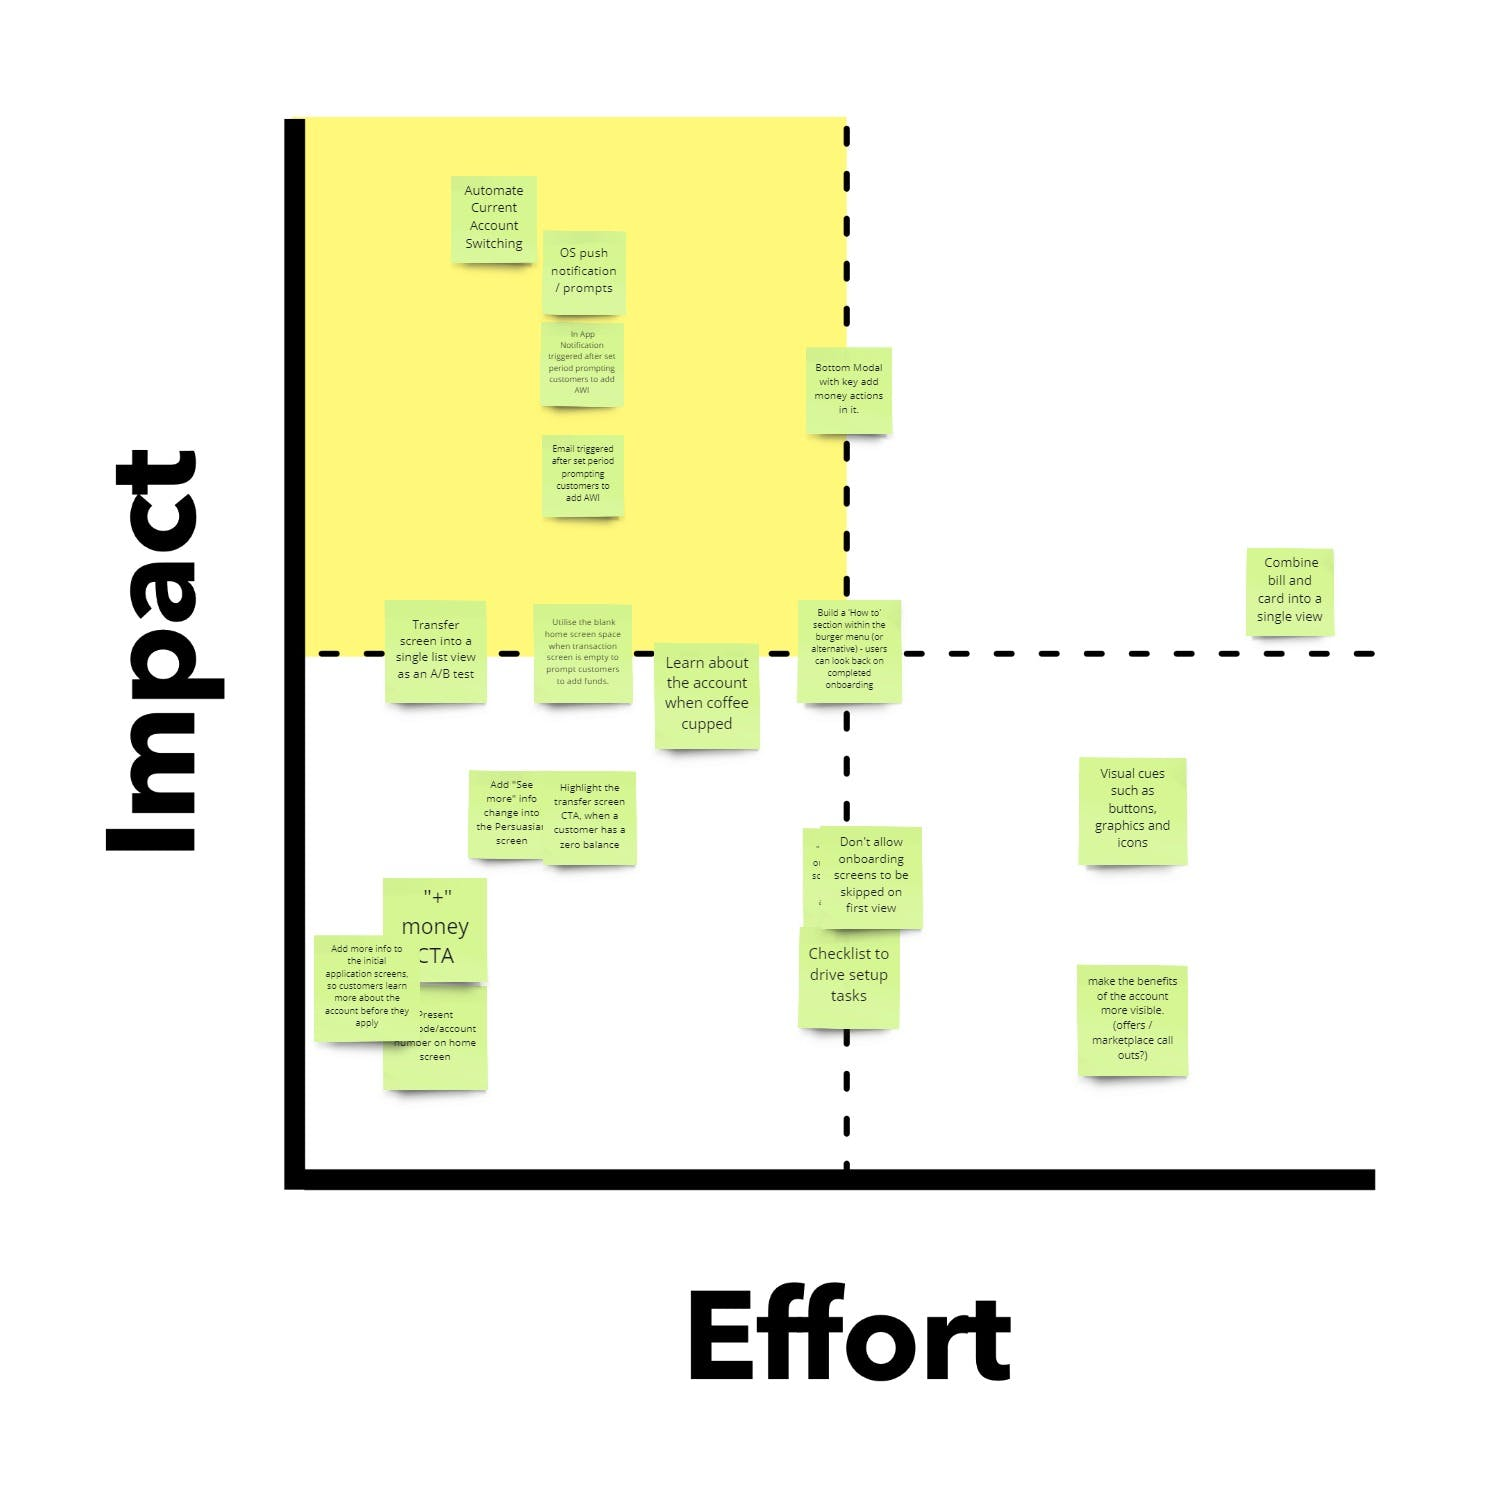 An impact/effort scale with solutions on it.